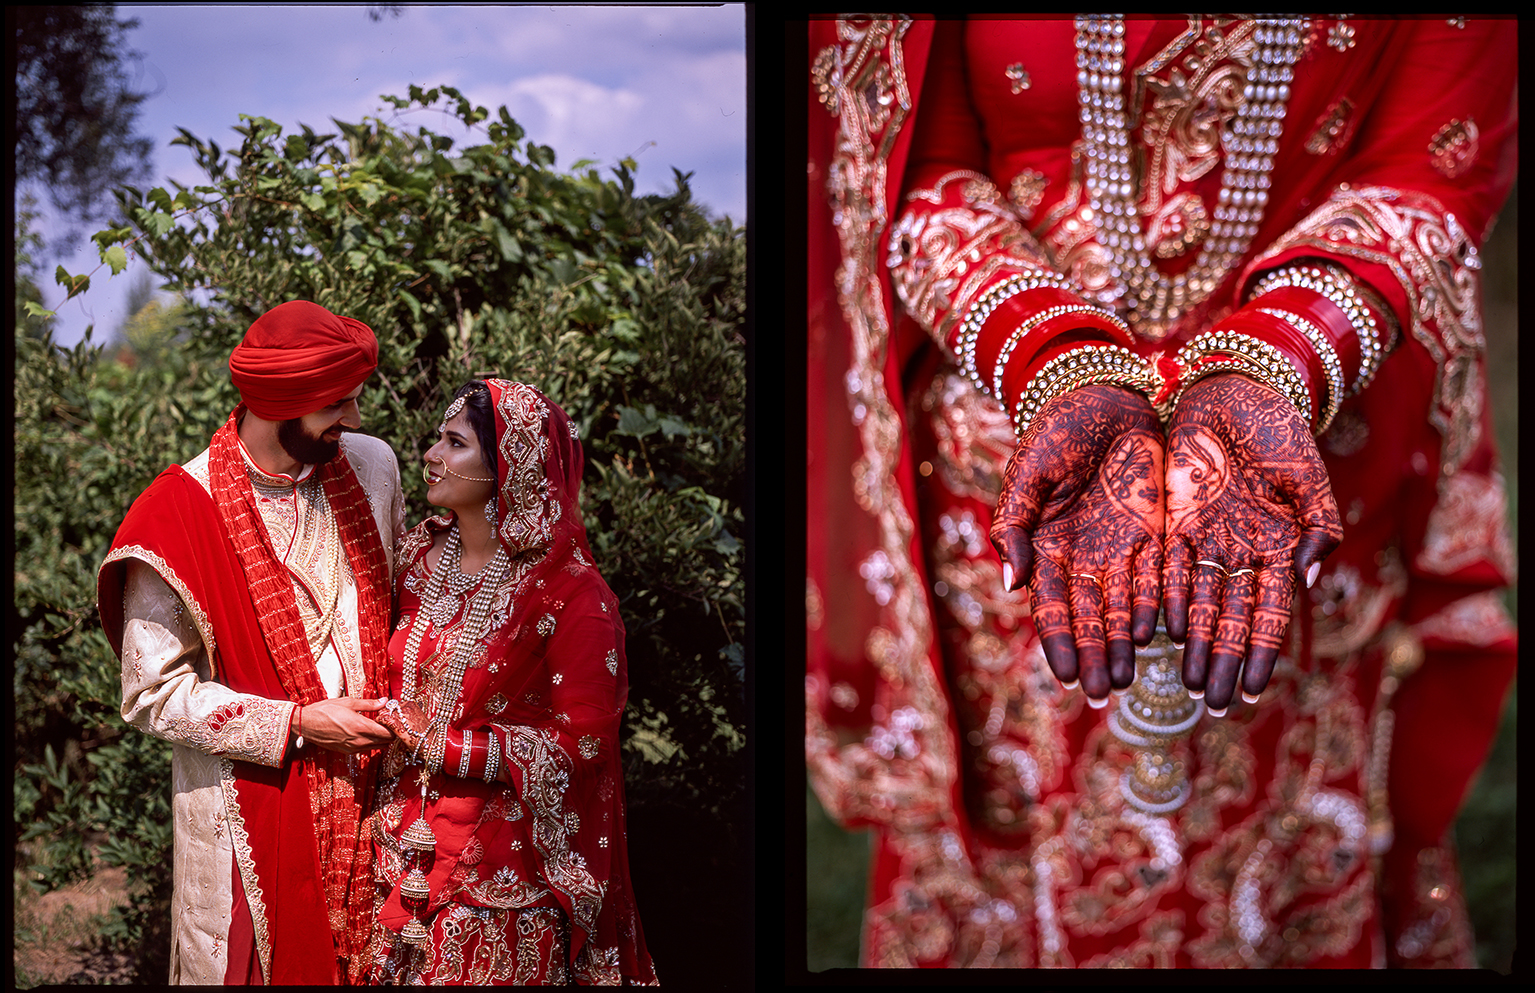 3-Best-Film-Wedding-Photographer-Toronto-3B-Photography-Brjann-Batista-Bettencourt-Edotiral-documentary-wedding-photography-candid-portrait-Medium-Format-Film-Fuji-Provia-100F-Slide-Film_Bride-Portrait_Hand-henna-tattoos-detail.jpg